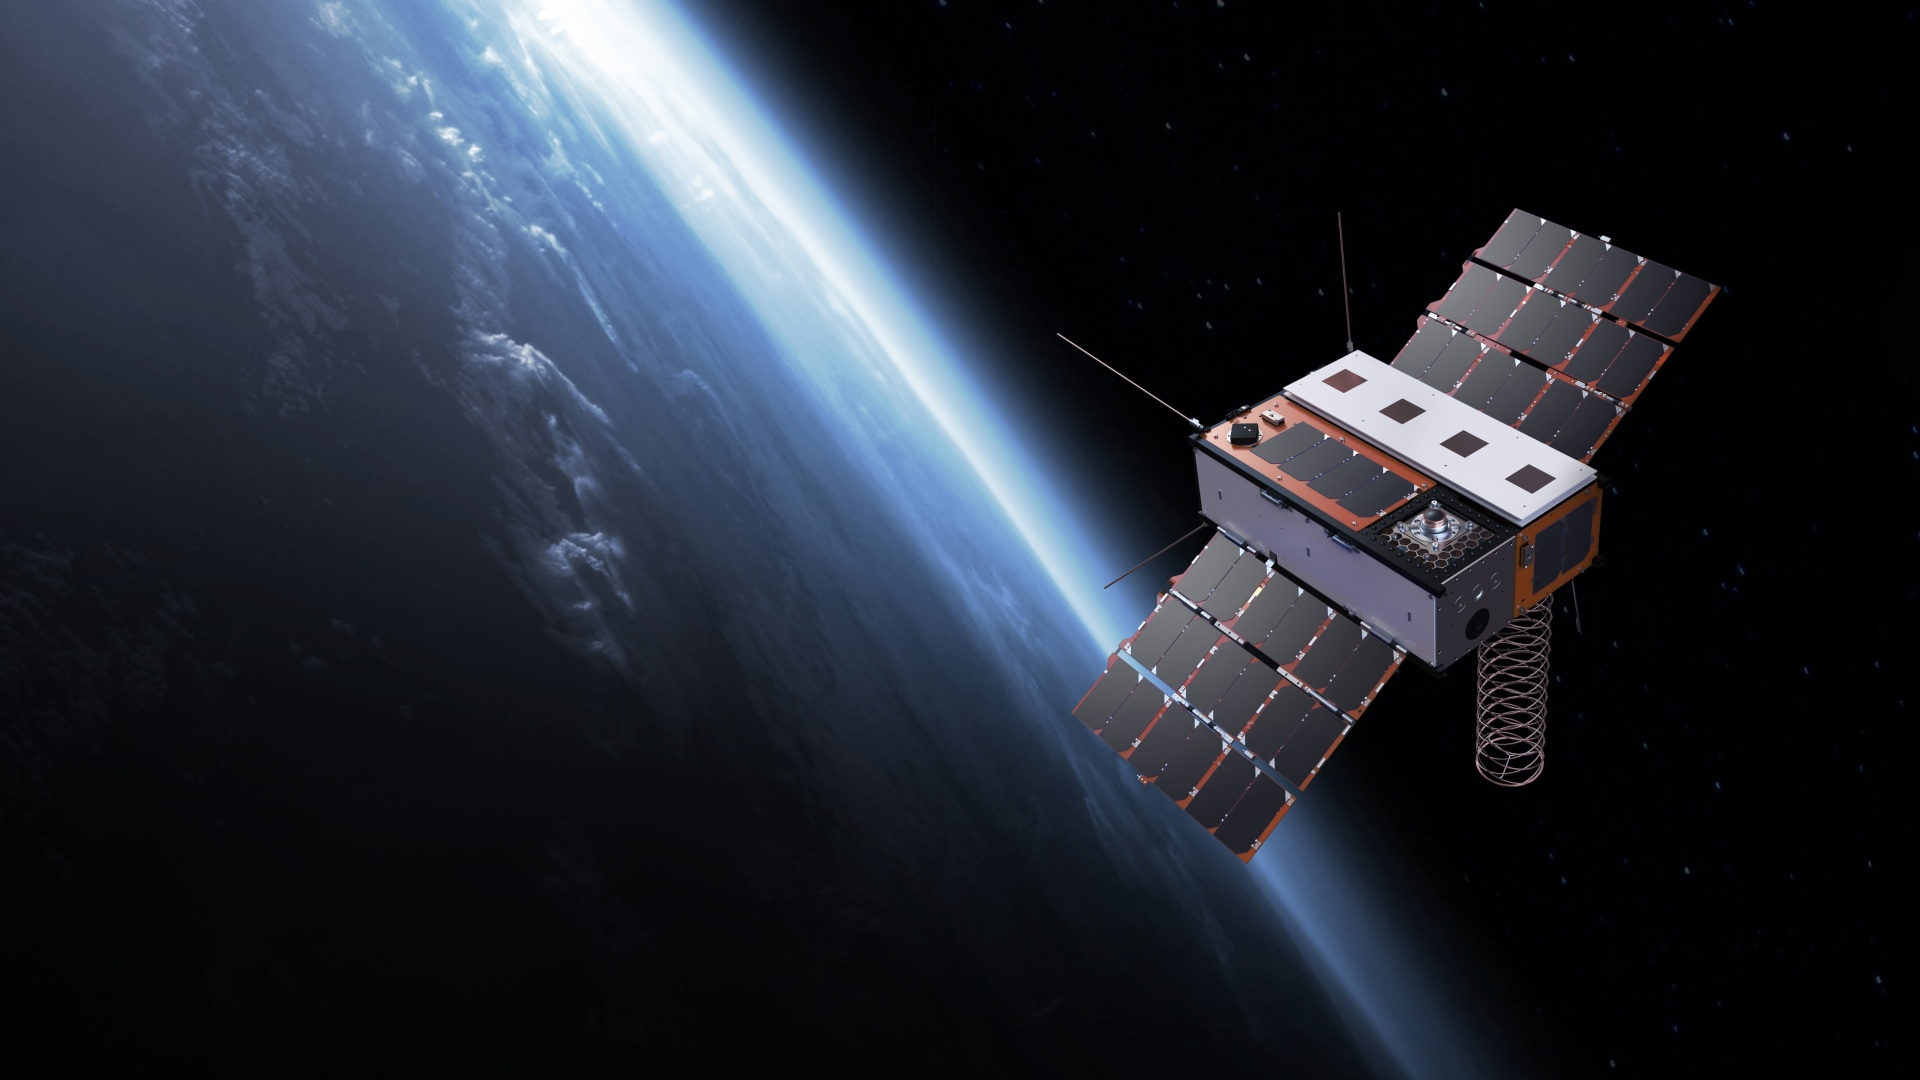 In-Space missions snapped up by BAE Systems